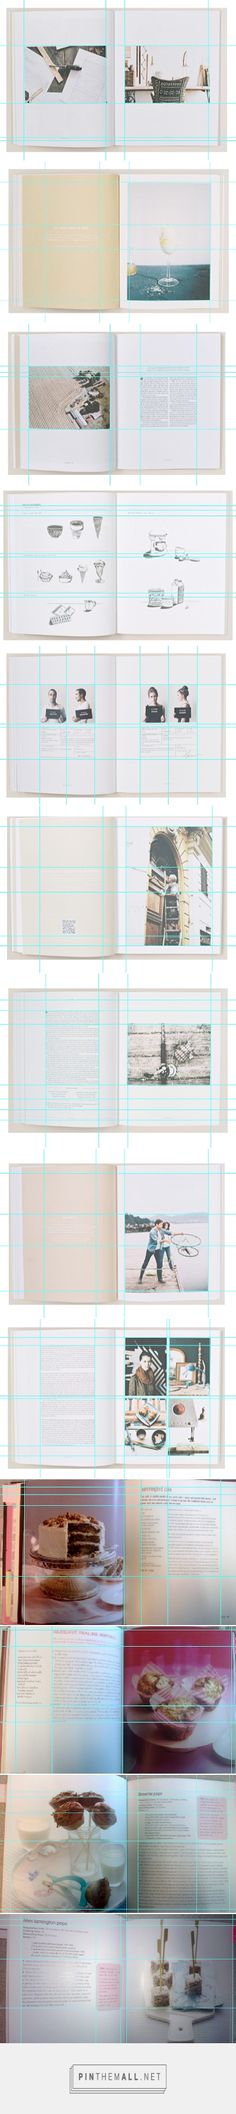 DESIGN PRACTICE. : KINFOLK; GRIDS AND LAYOUT DEVELOPMENT... - a grouped images picture